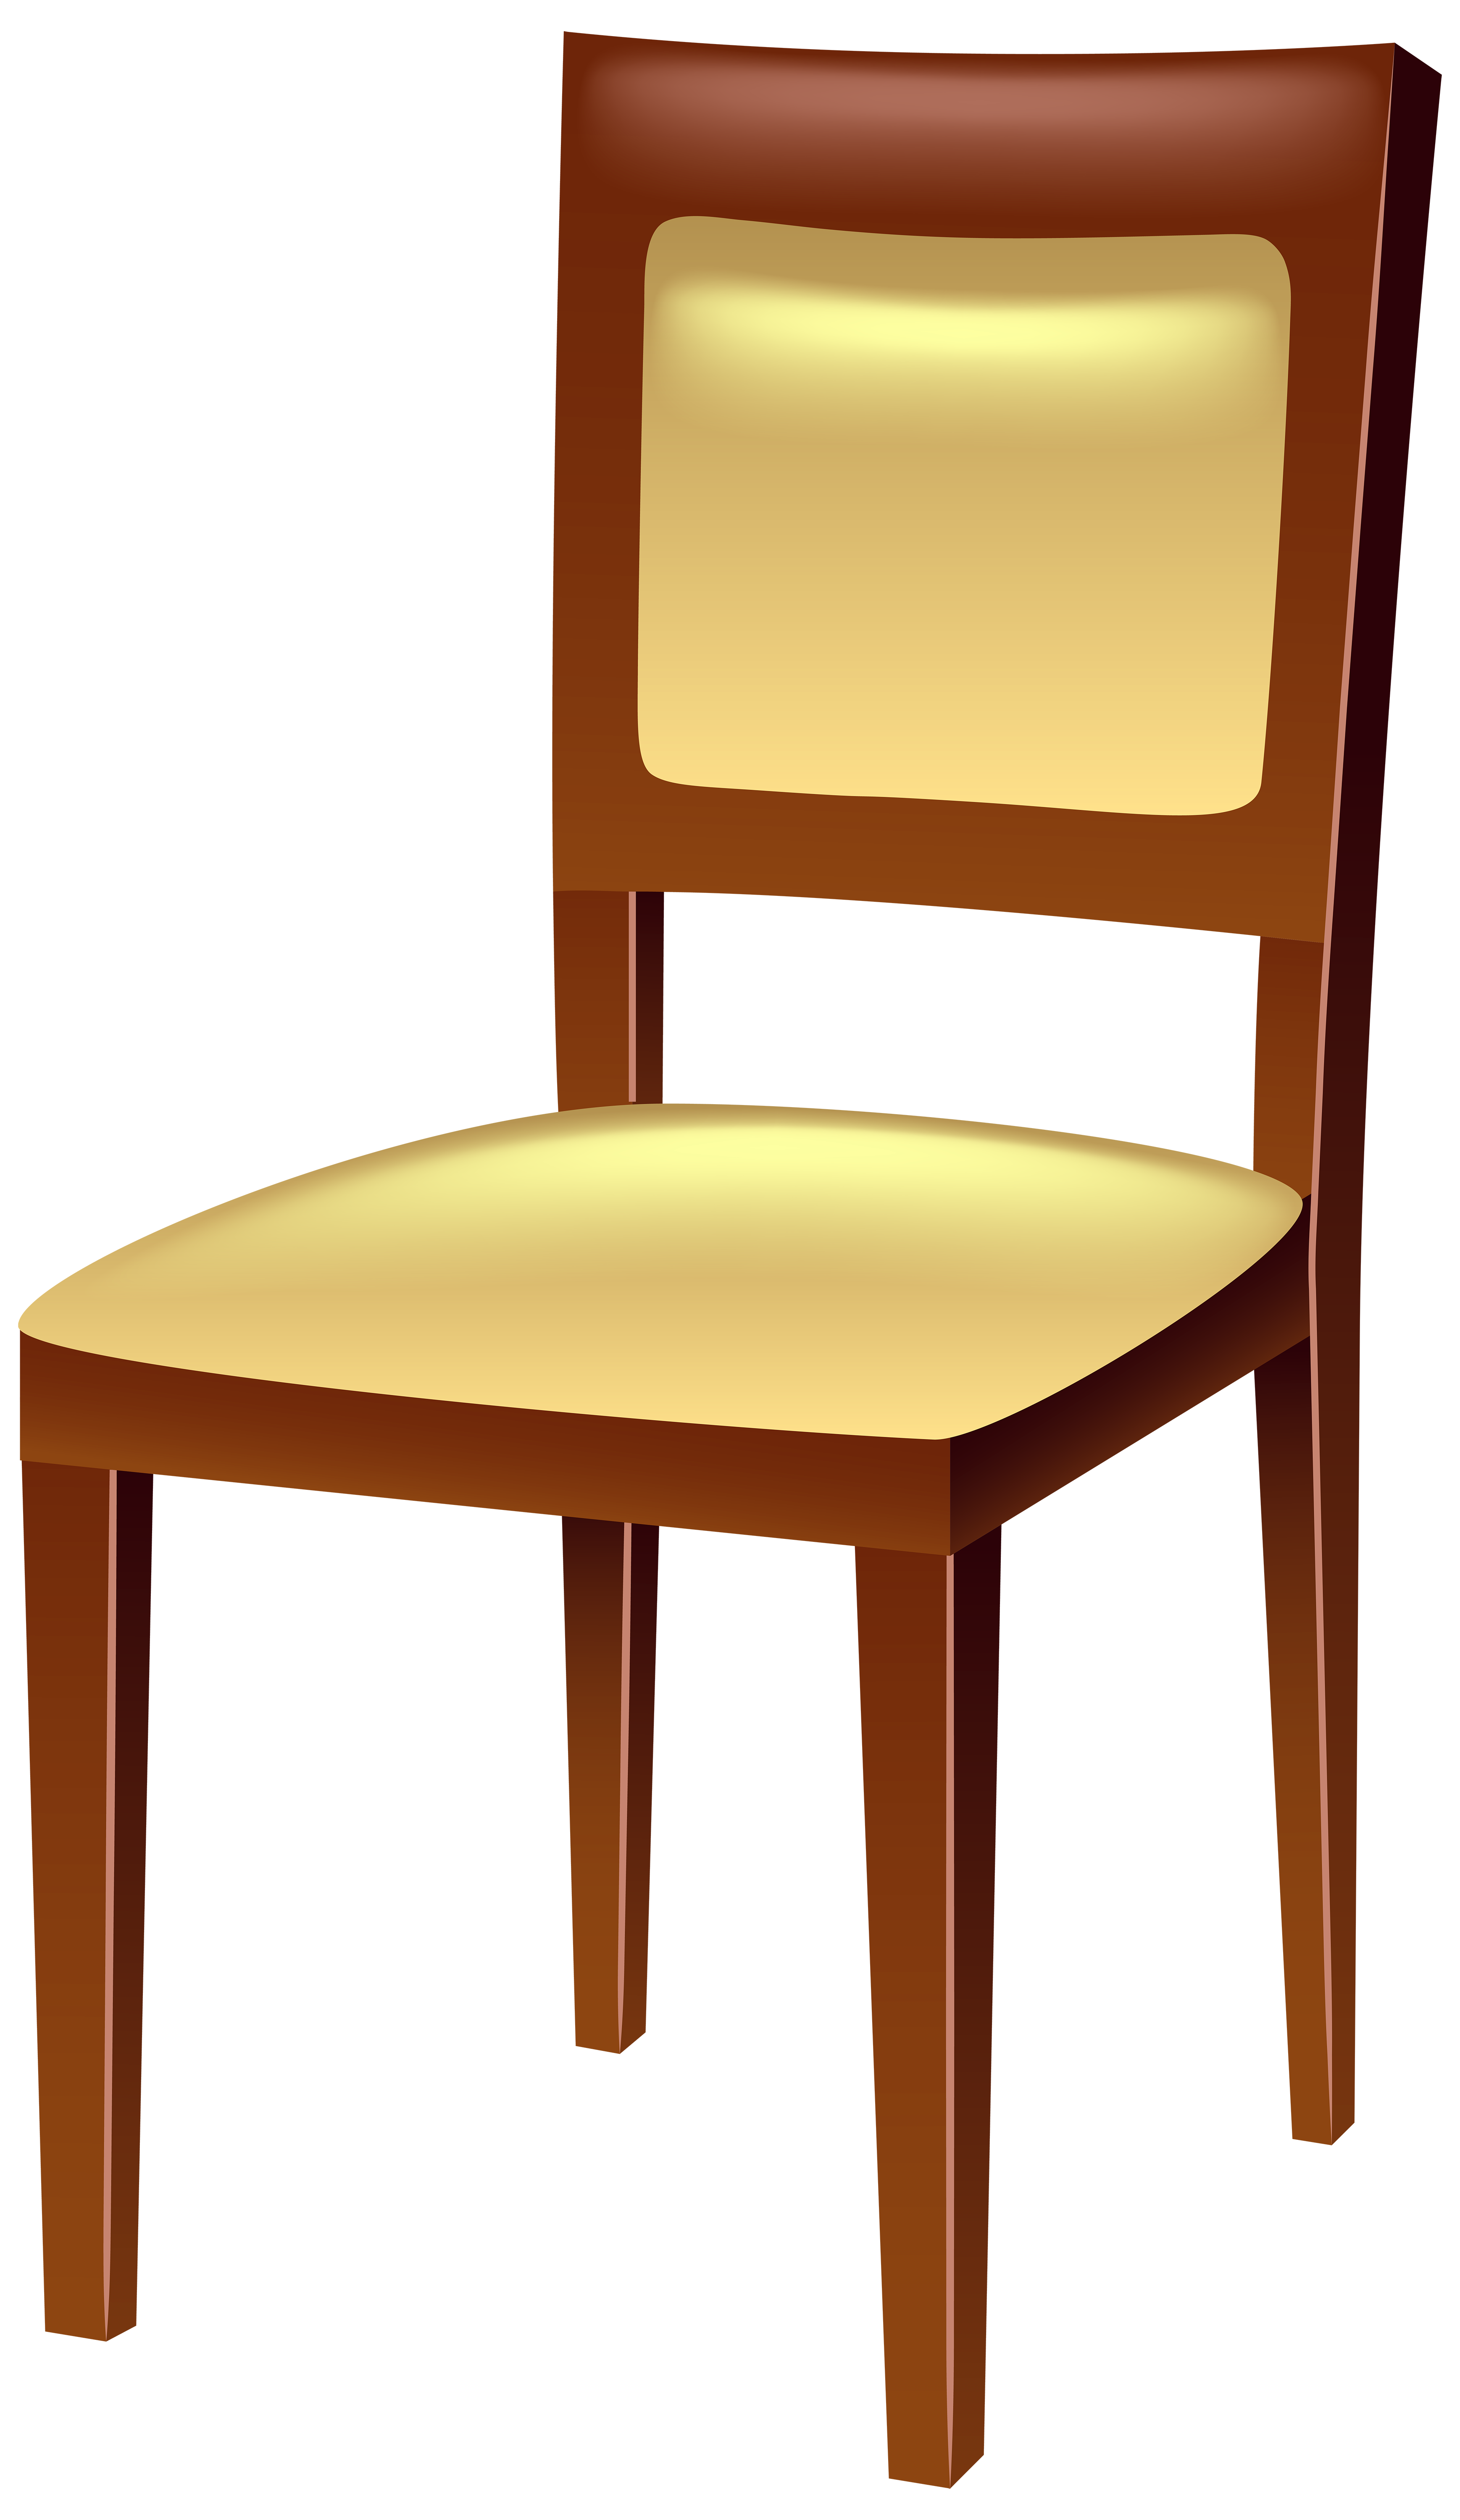 Chair clipart images banner freeuse library Chair Transparent PNG Clip Art Image | Gallery Yopriceville - High ... banner freeuse library